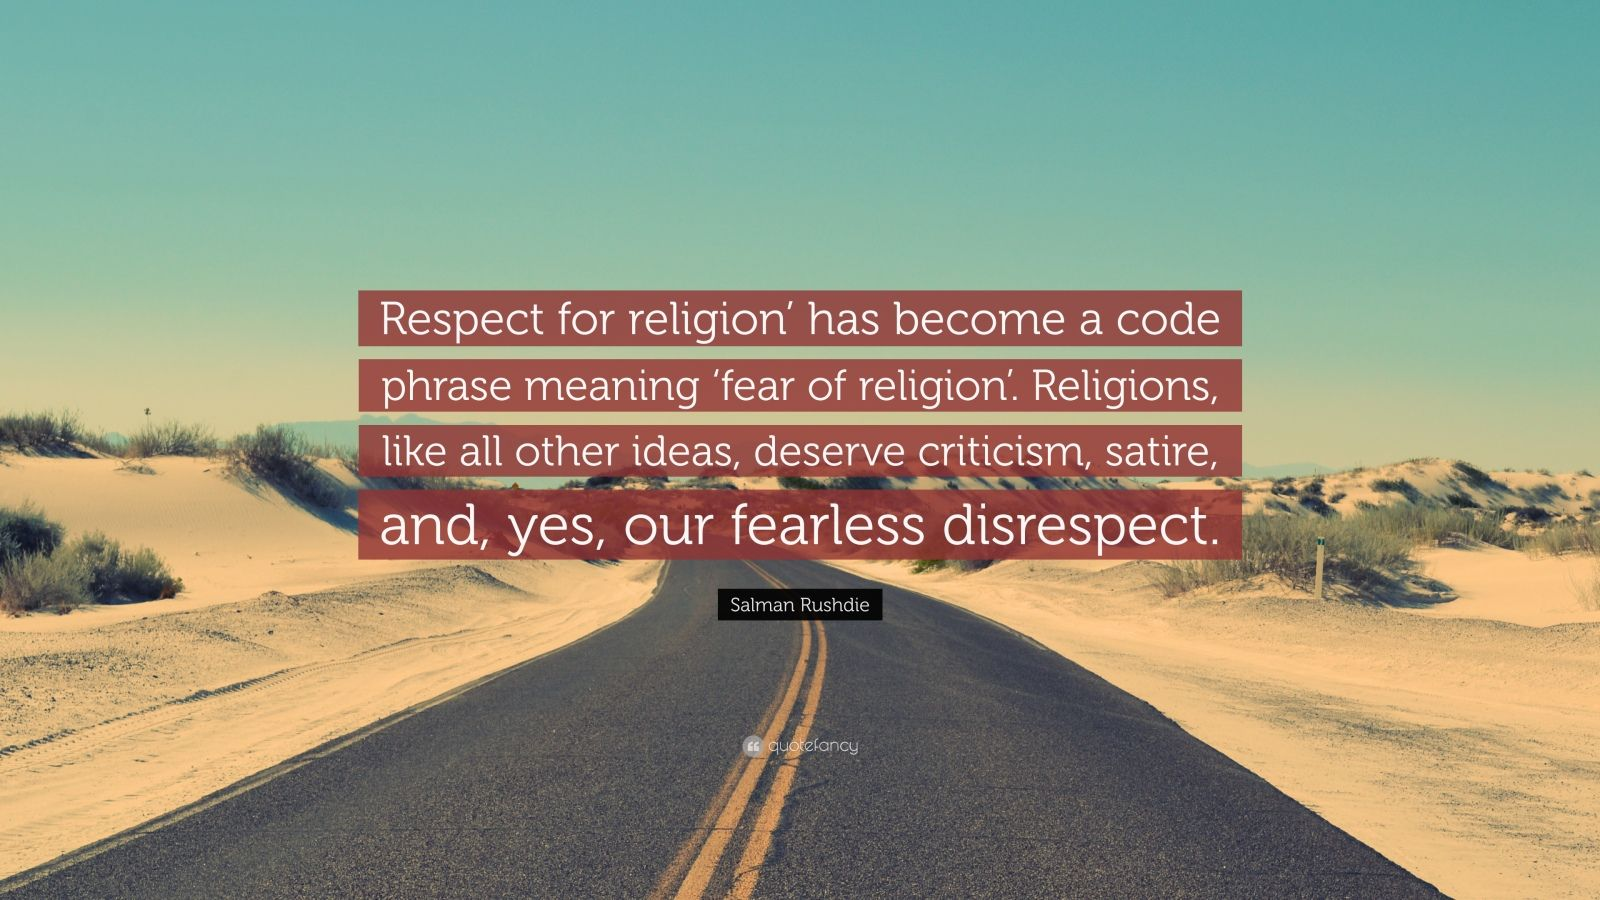 """Salman Rushdie Quote: """"Respect for religion' has become a code phrase meaning 'fear of religion'. Religions, like all other ideas, deserve criticism, satire, and, yes, our fearless disrespect."""""""